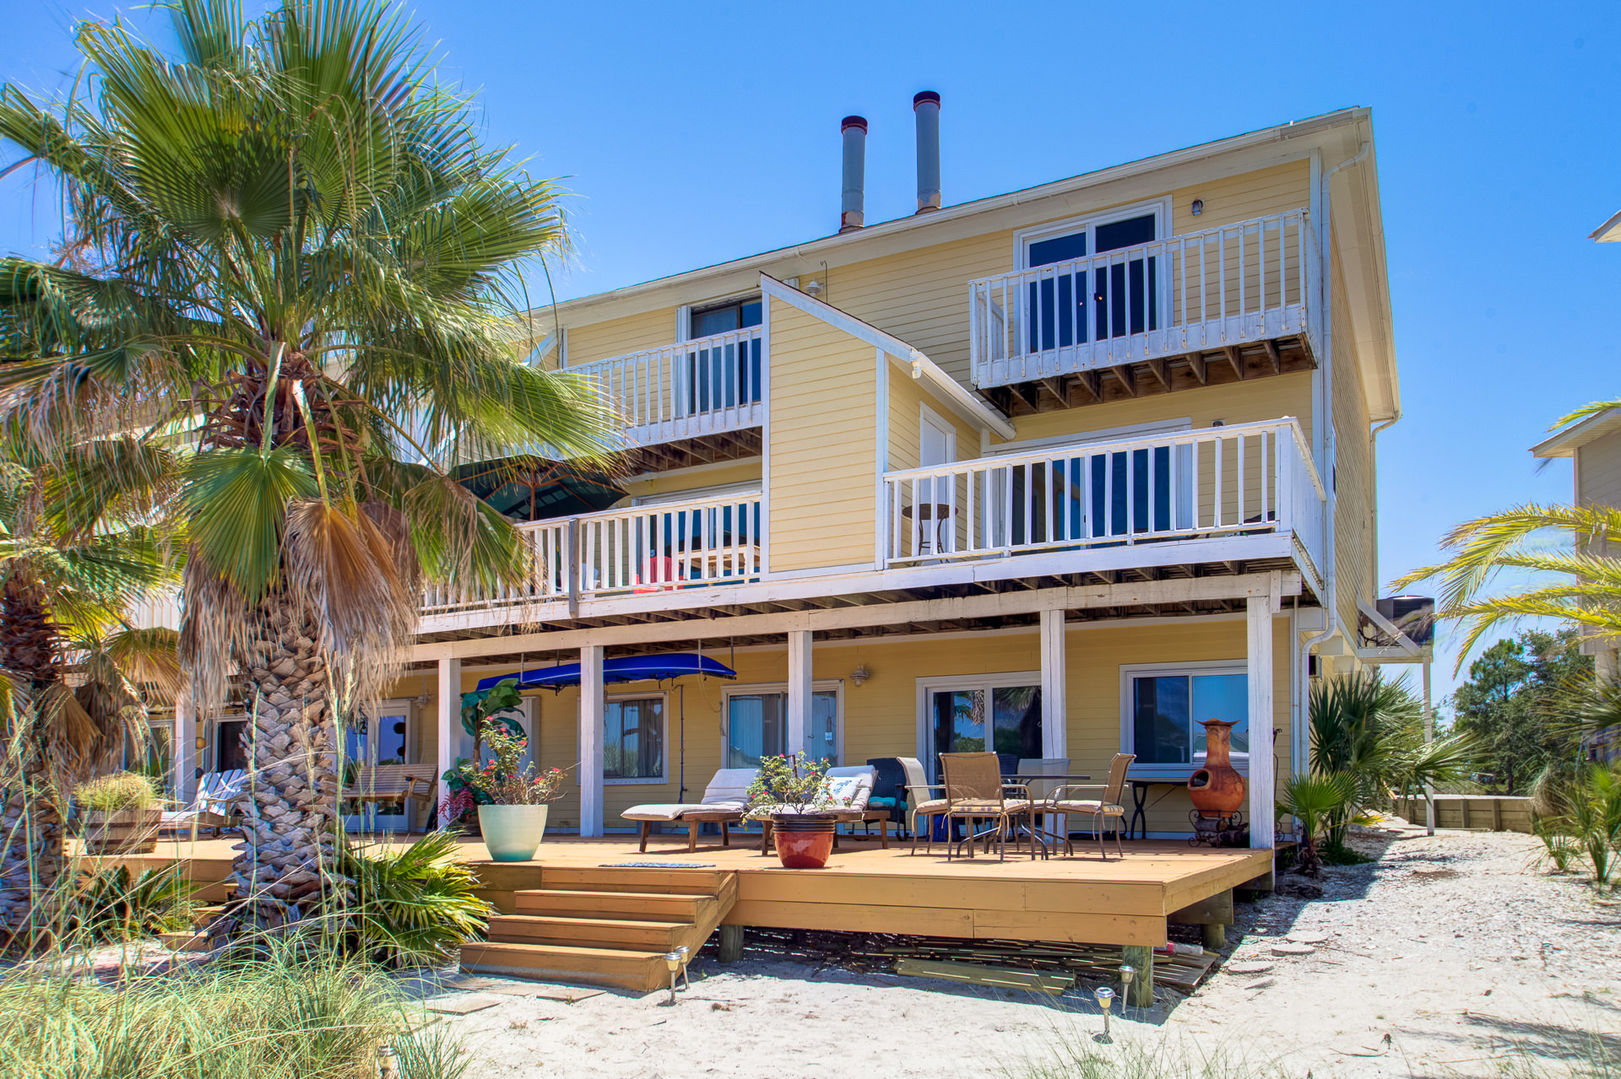 An Image of the Front of Vacation Rental in Pensacola Florida.